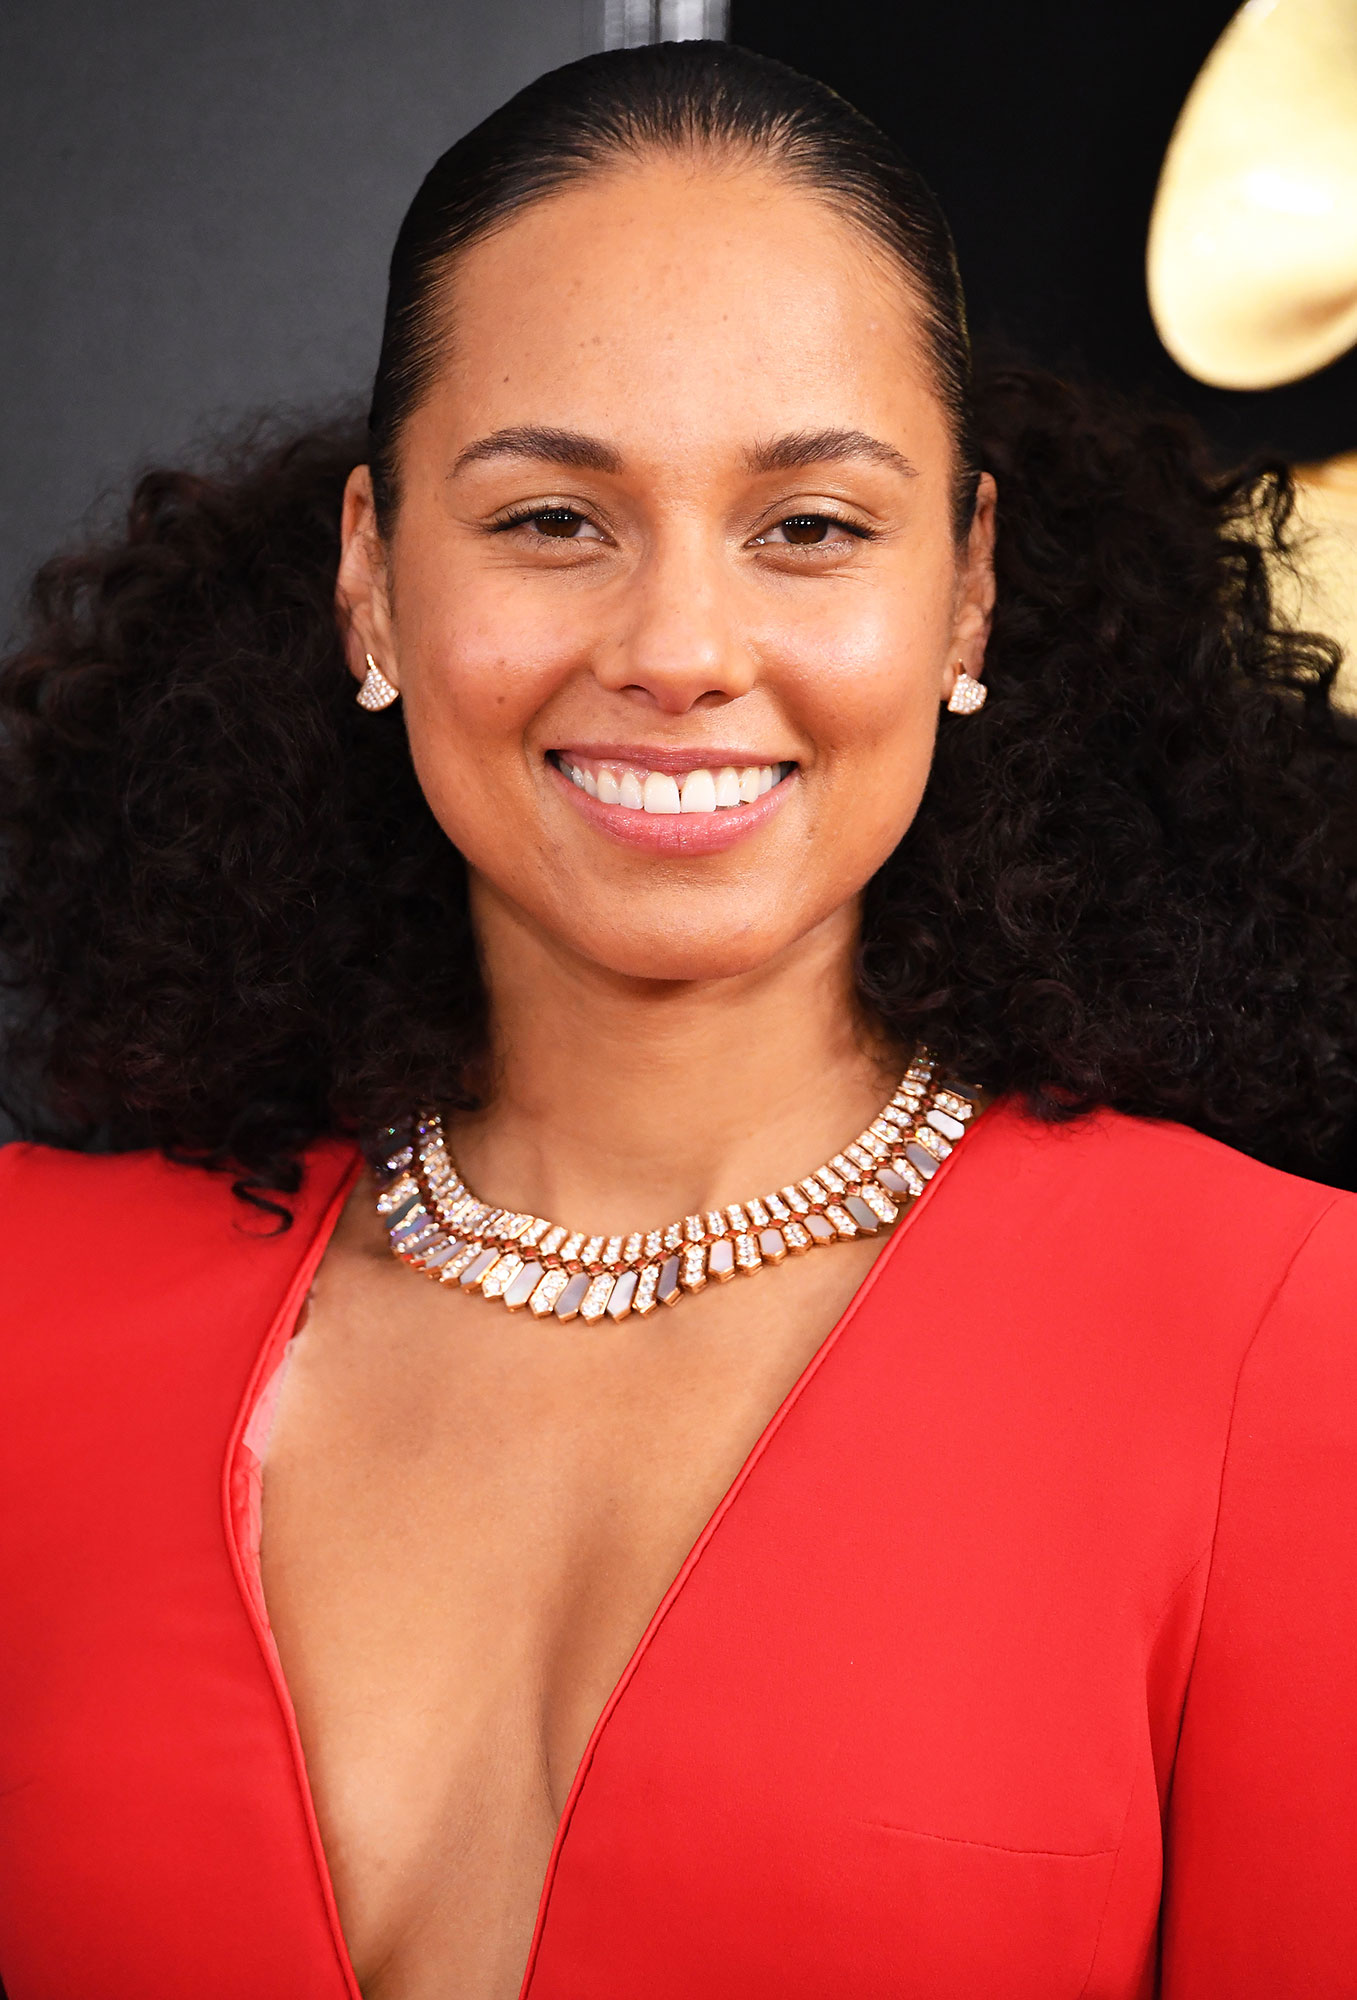 Alicia Keys - The Grammy host is known for her barely there makeup looks, so makeup artist Dotti simply upped her glow game for the awards ceremony by blending the Burt's Bees Complete Nourishment Facial Oil and Goodness Glows Full Coverage Liquid Makeup .